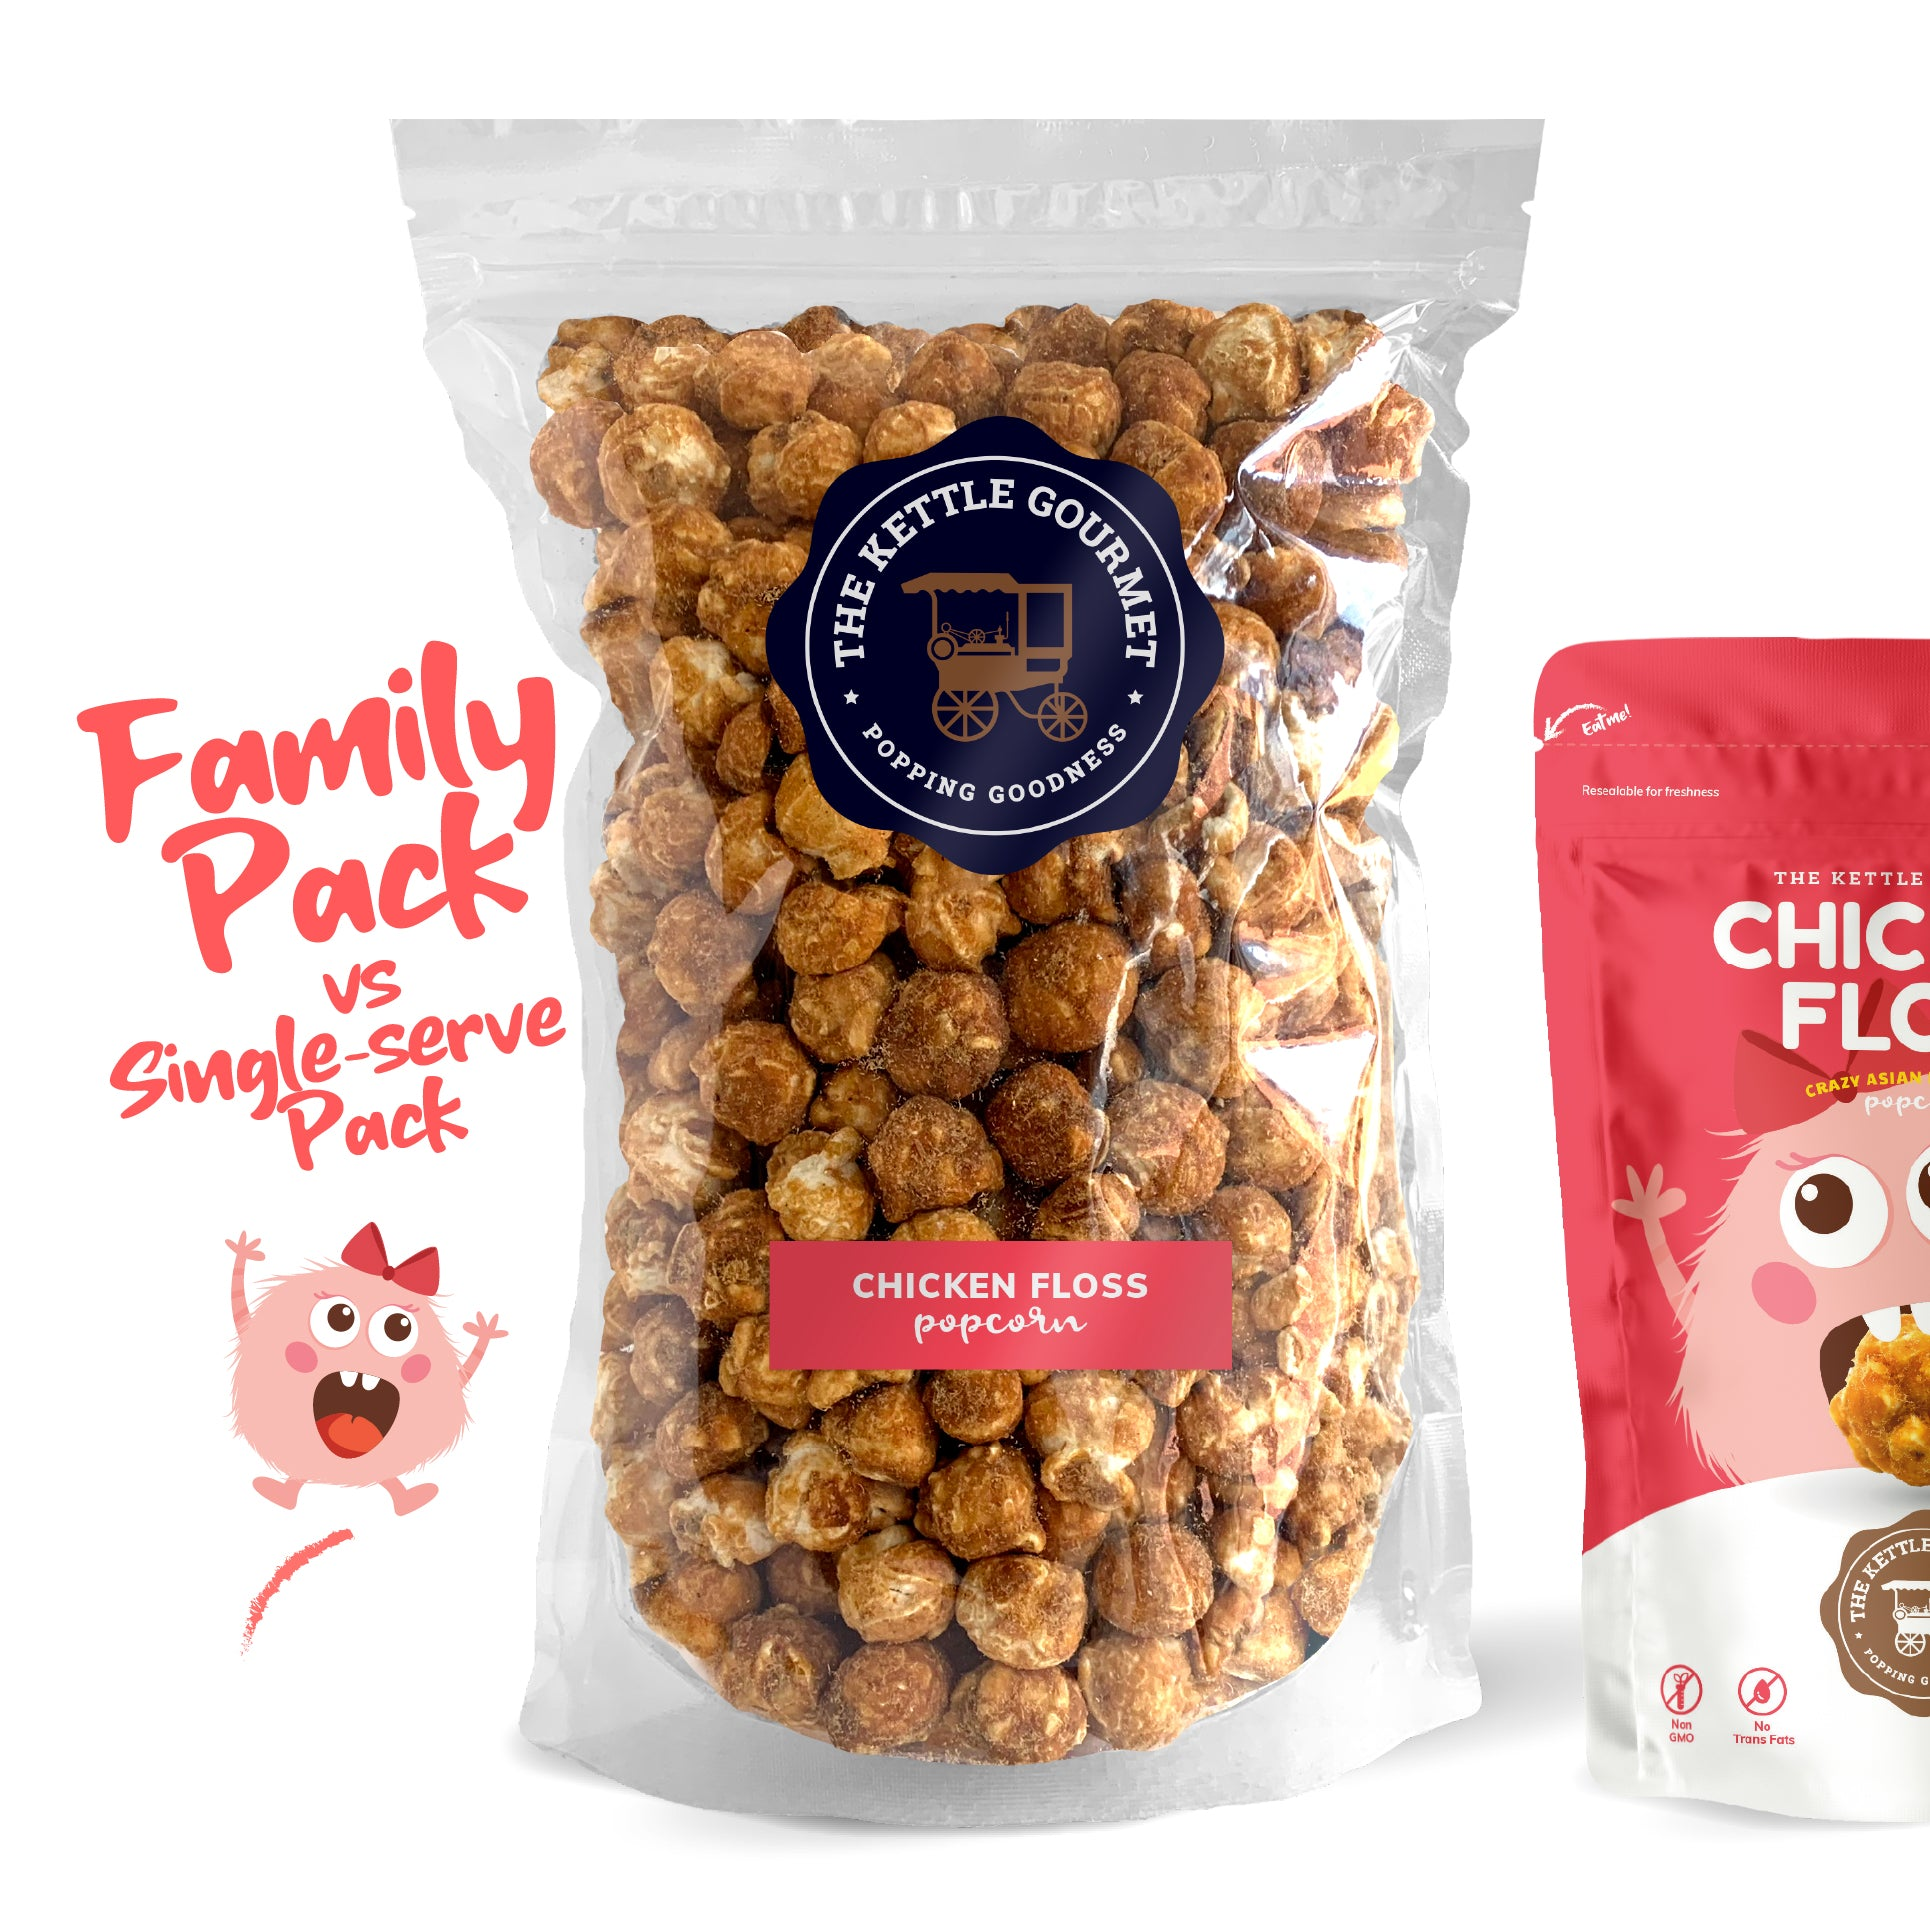 TKG Chicken Floss Flavoured Popcorn (Family Pack vs Single-serve)